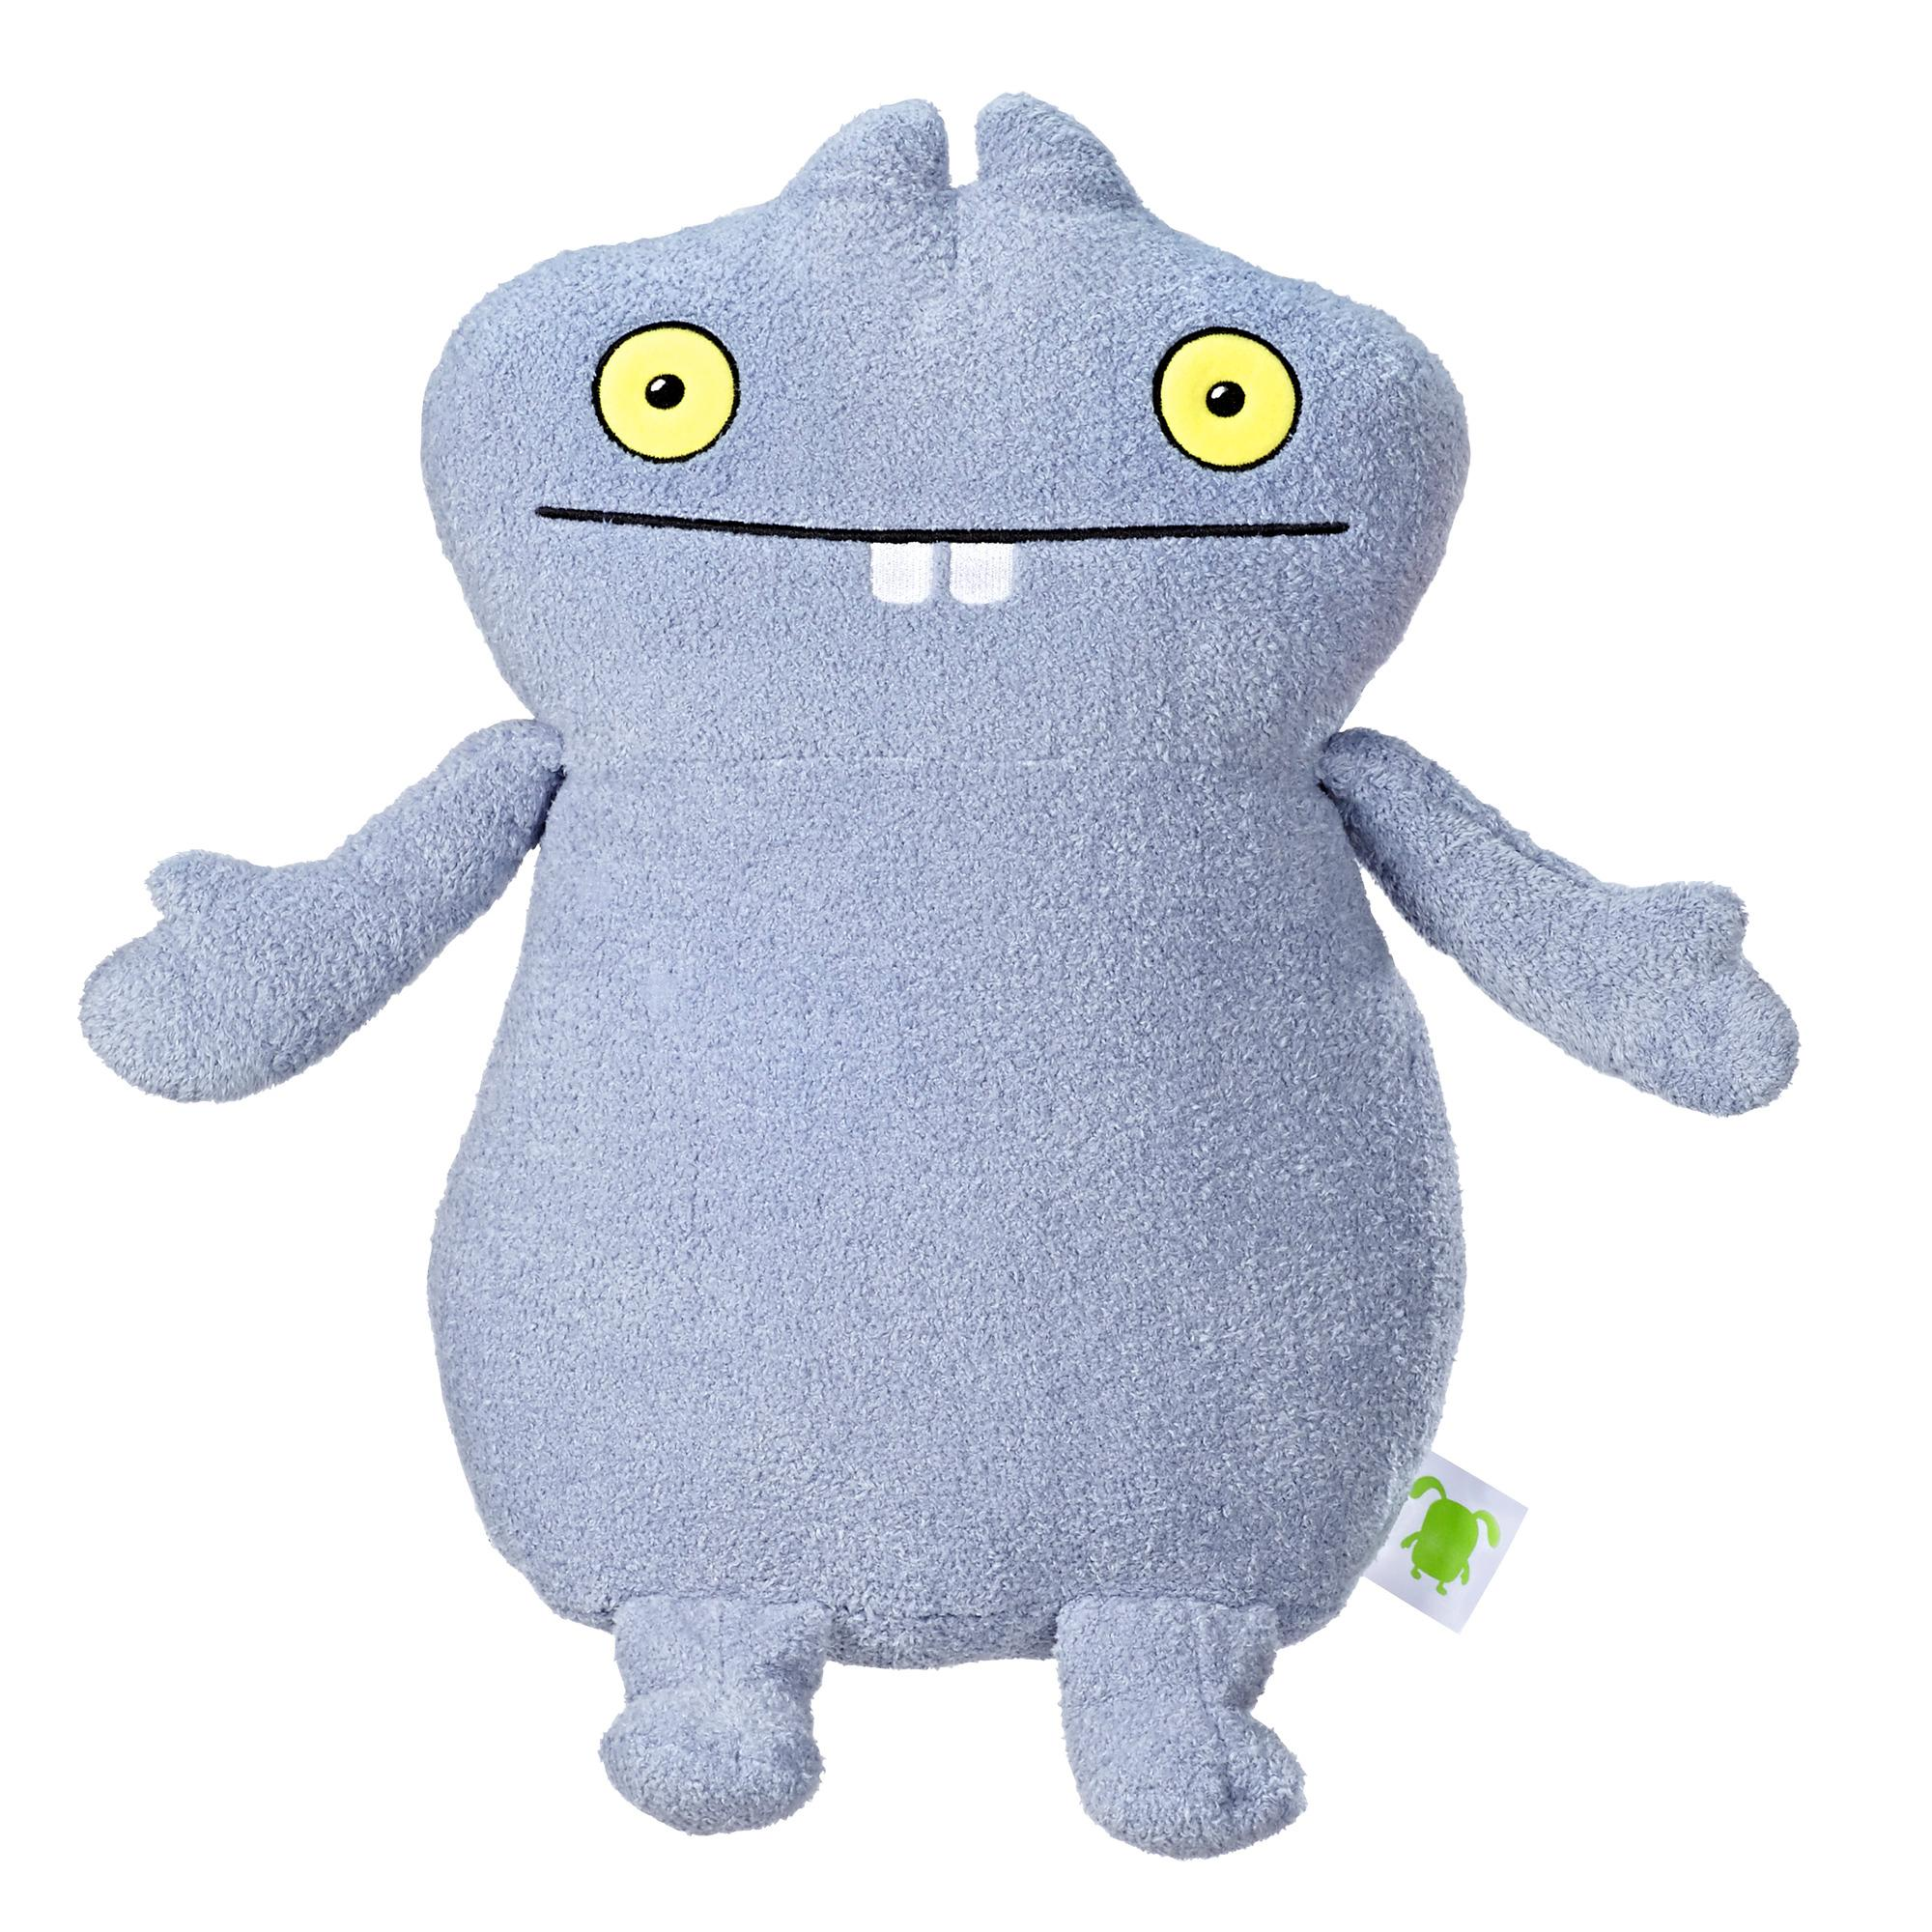 UglyDolls Babo Large Plush Stuffed Toy